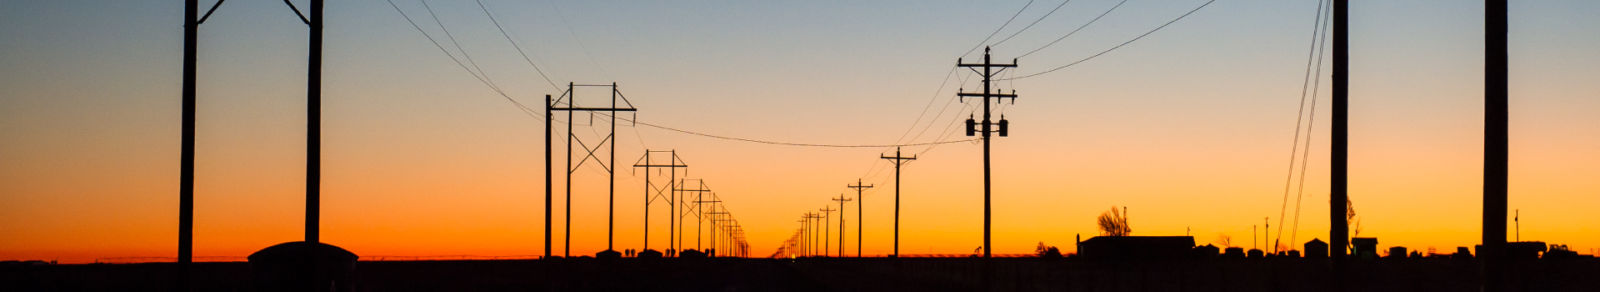 row of powerlines at sunset, sky from blue to orange